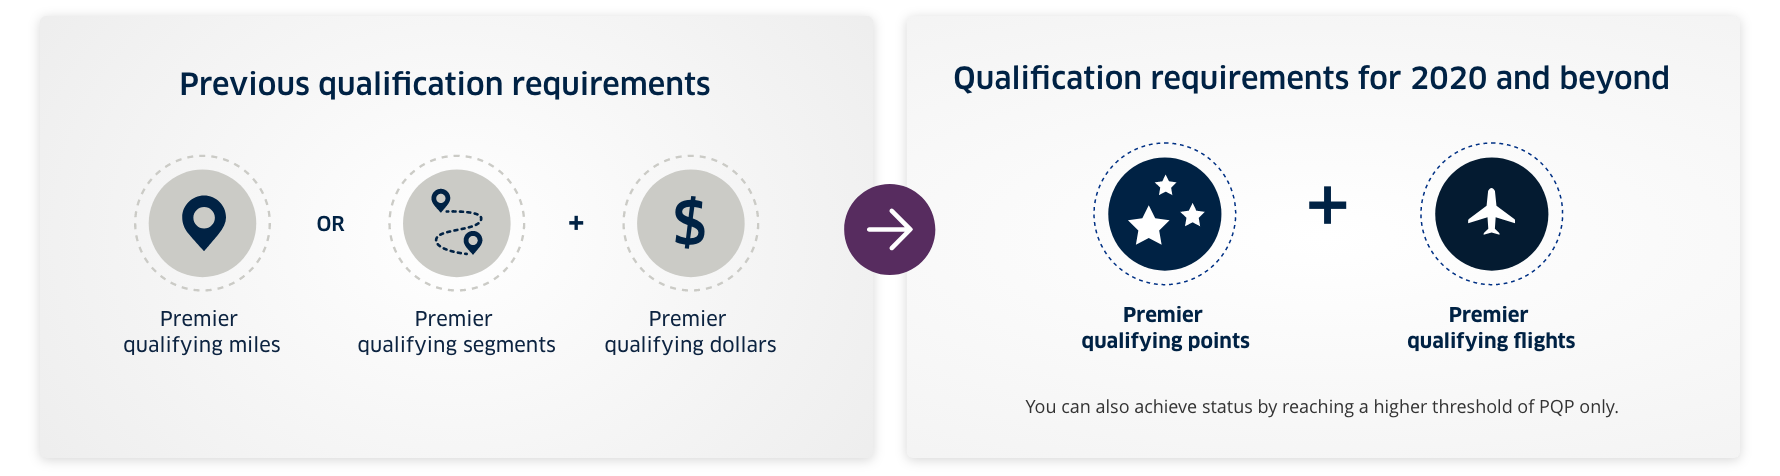 New Premier status qualification requirements for 2020